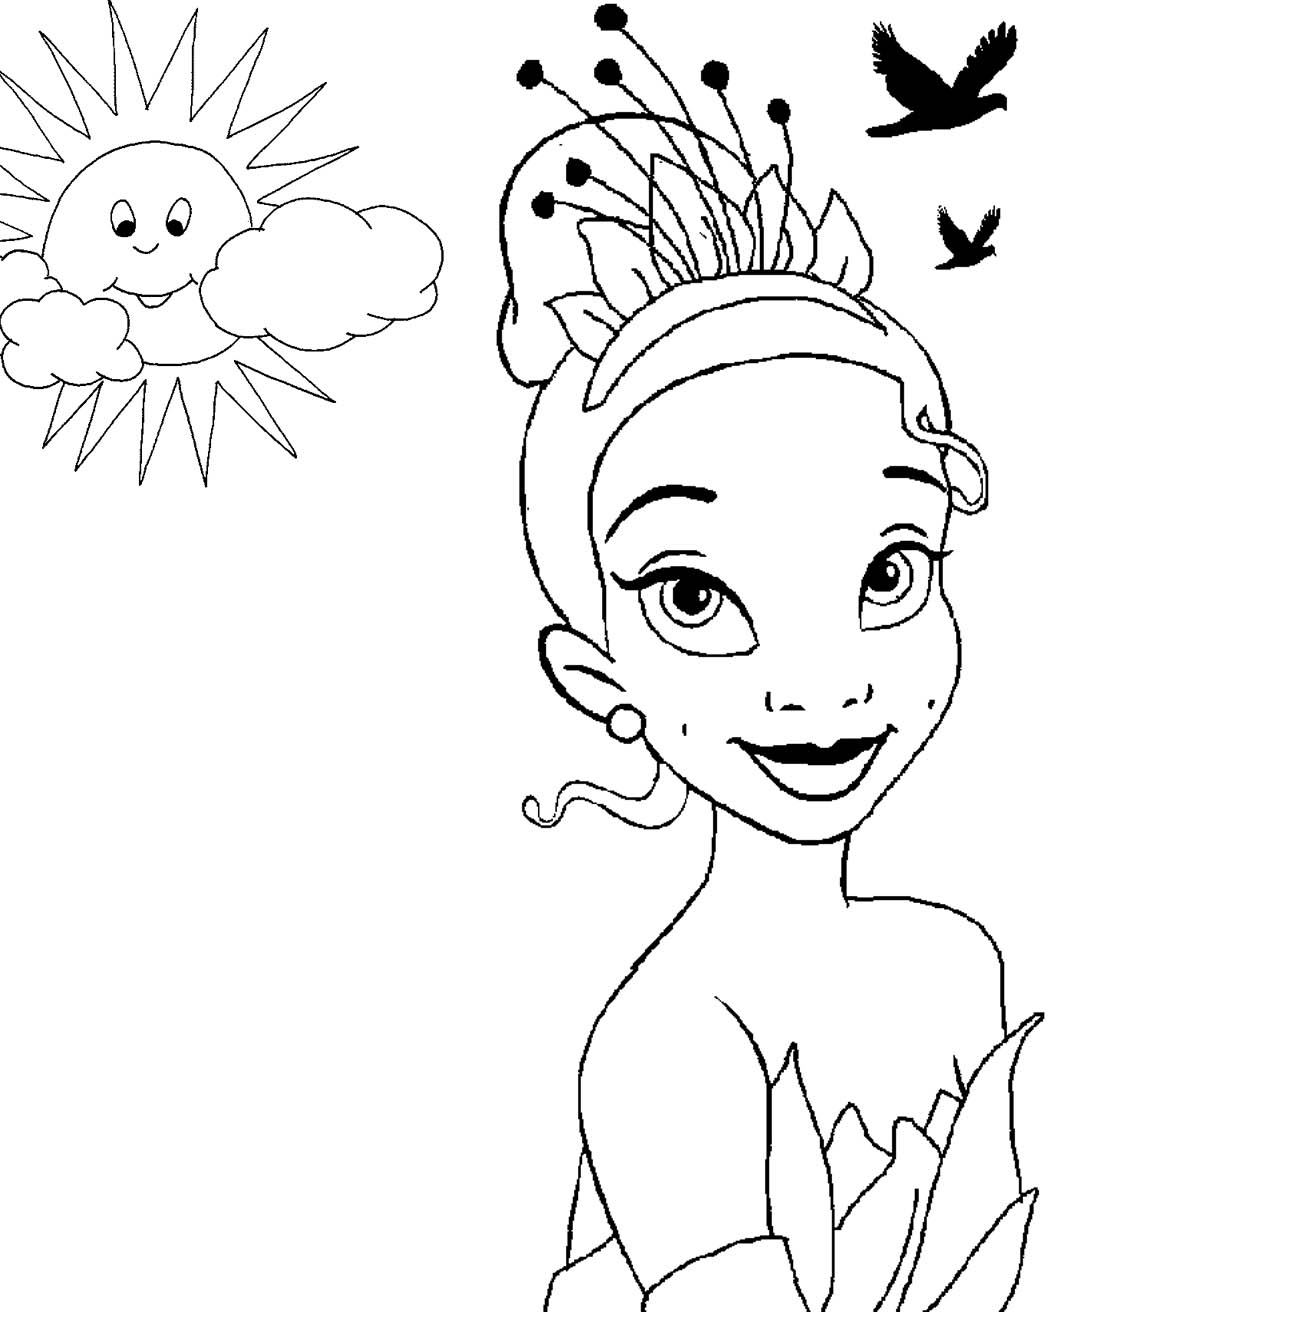 coloring pages for girls disney disney princess tiana coloring pages to girls disney for pages girls coloring